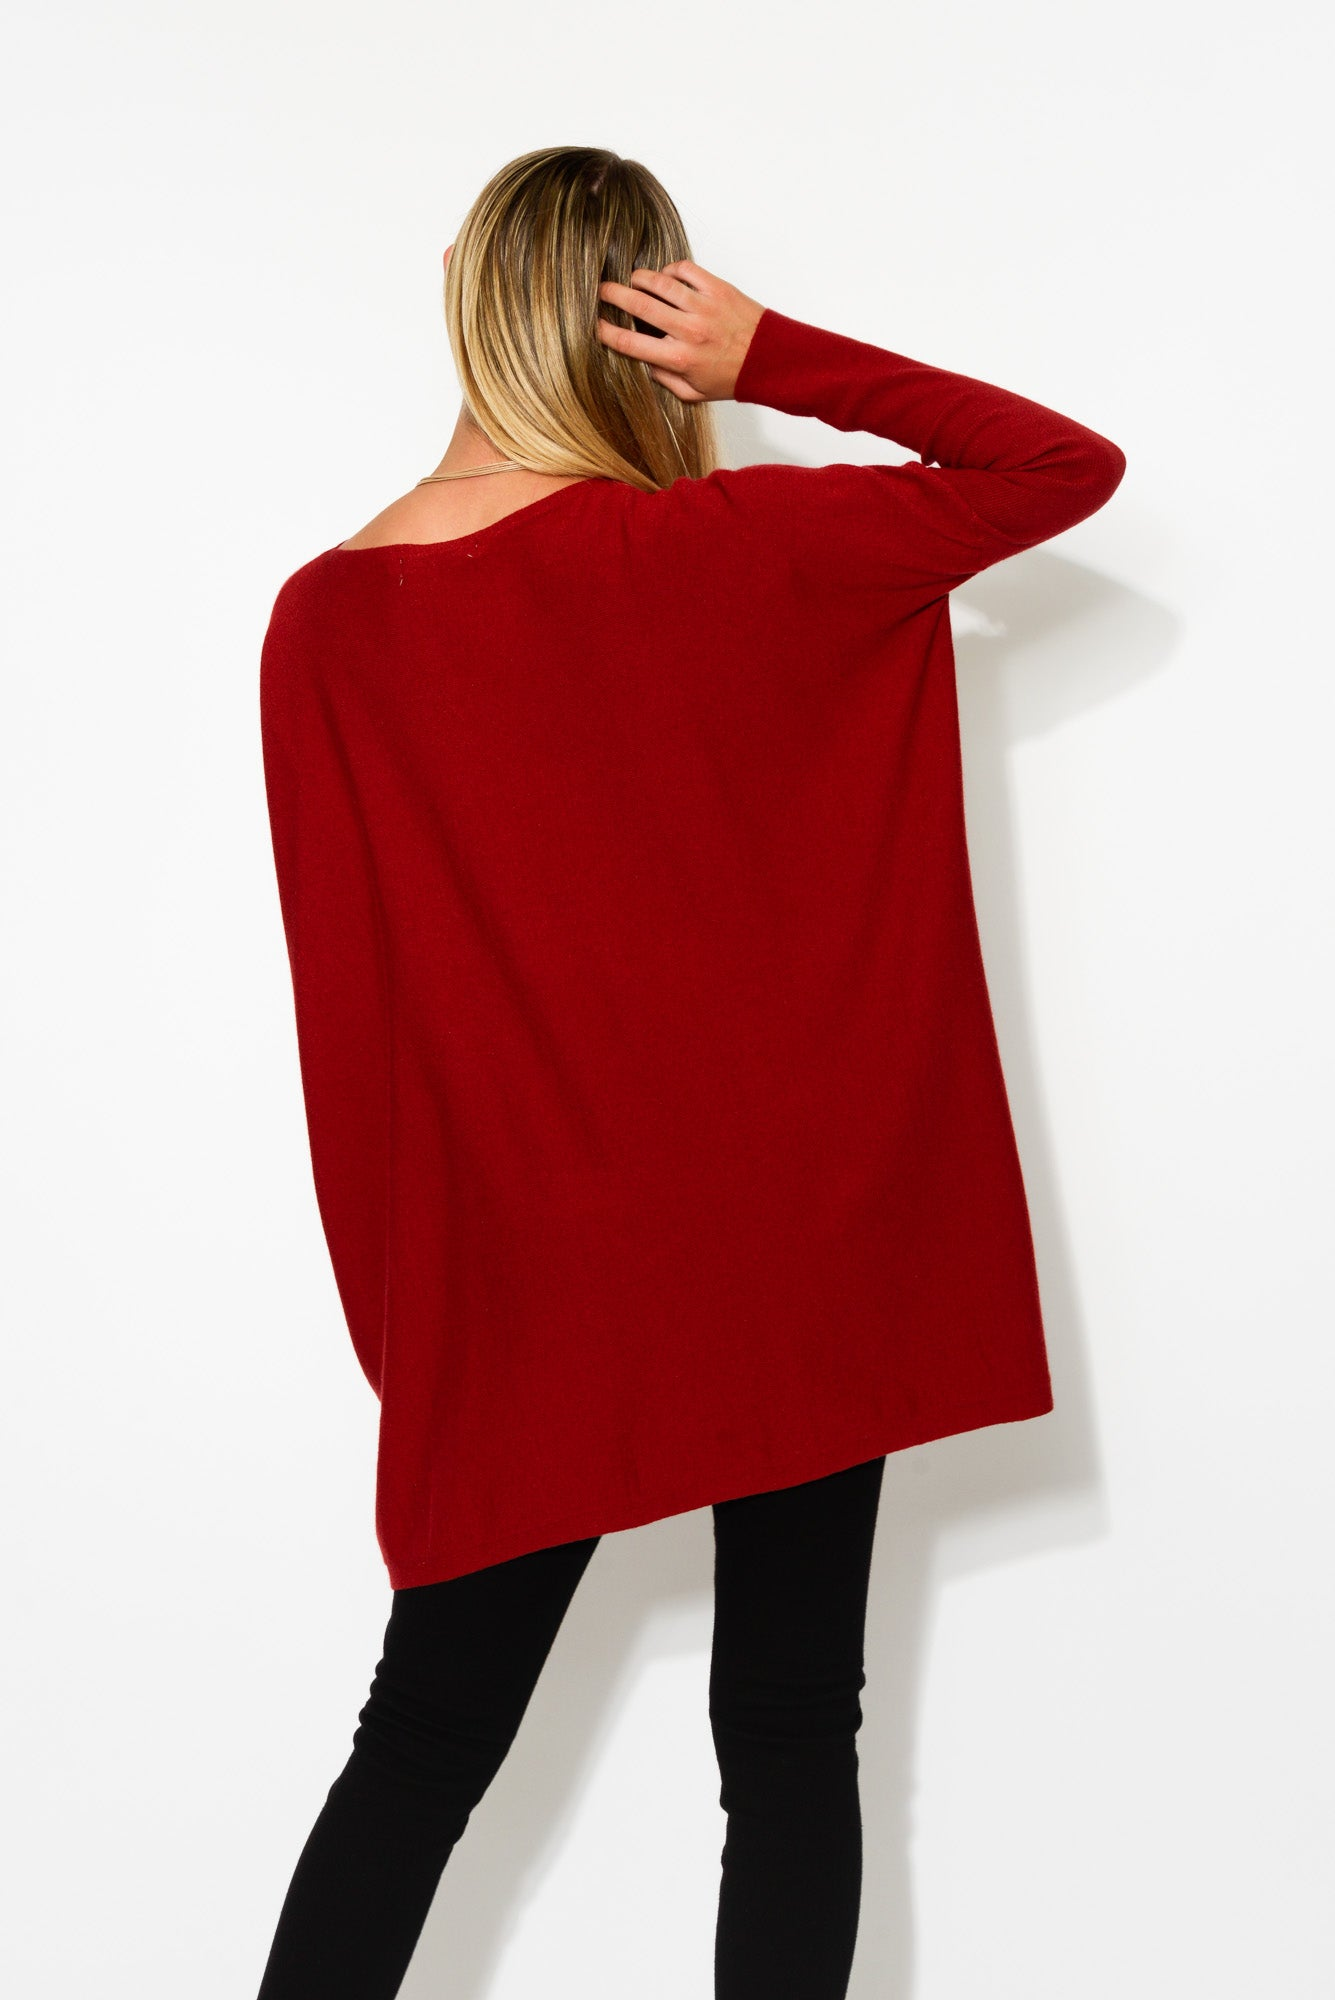 Marnie Red Drape Jumper - Blue Bungalow